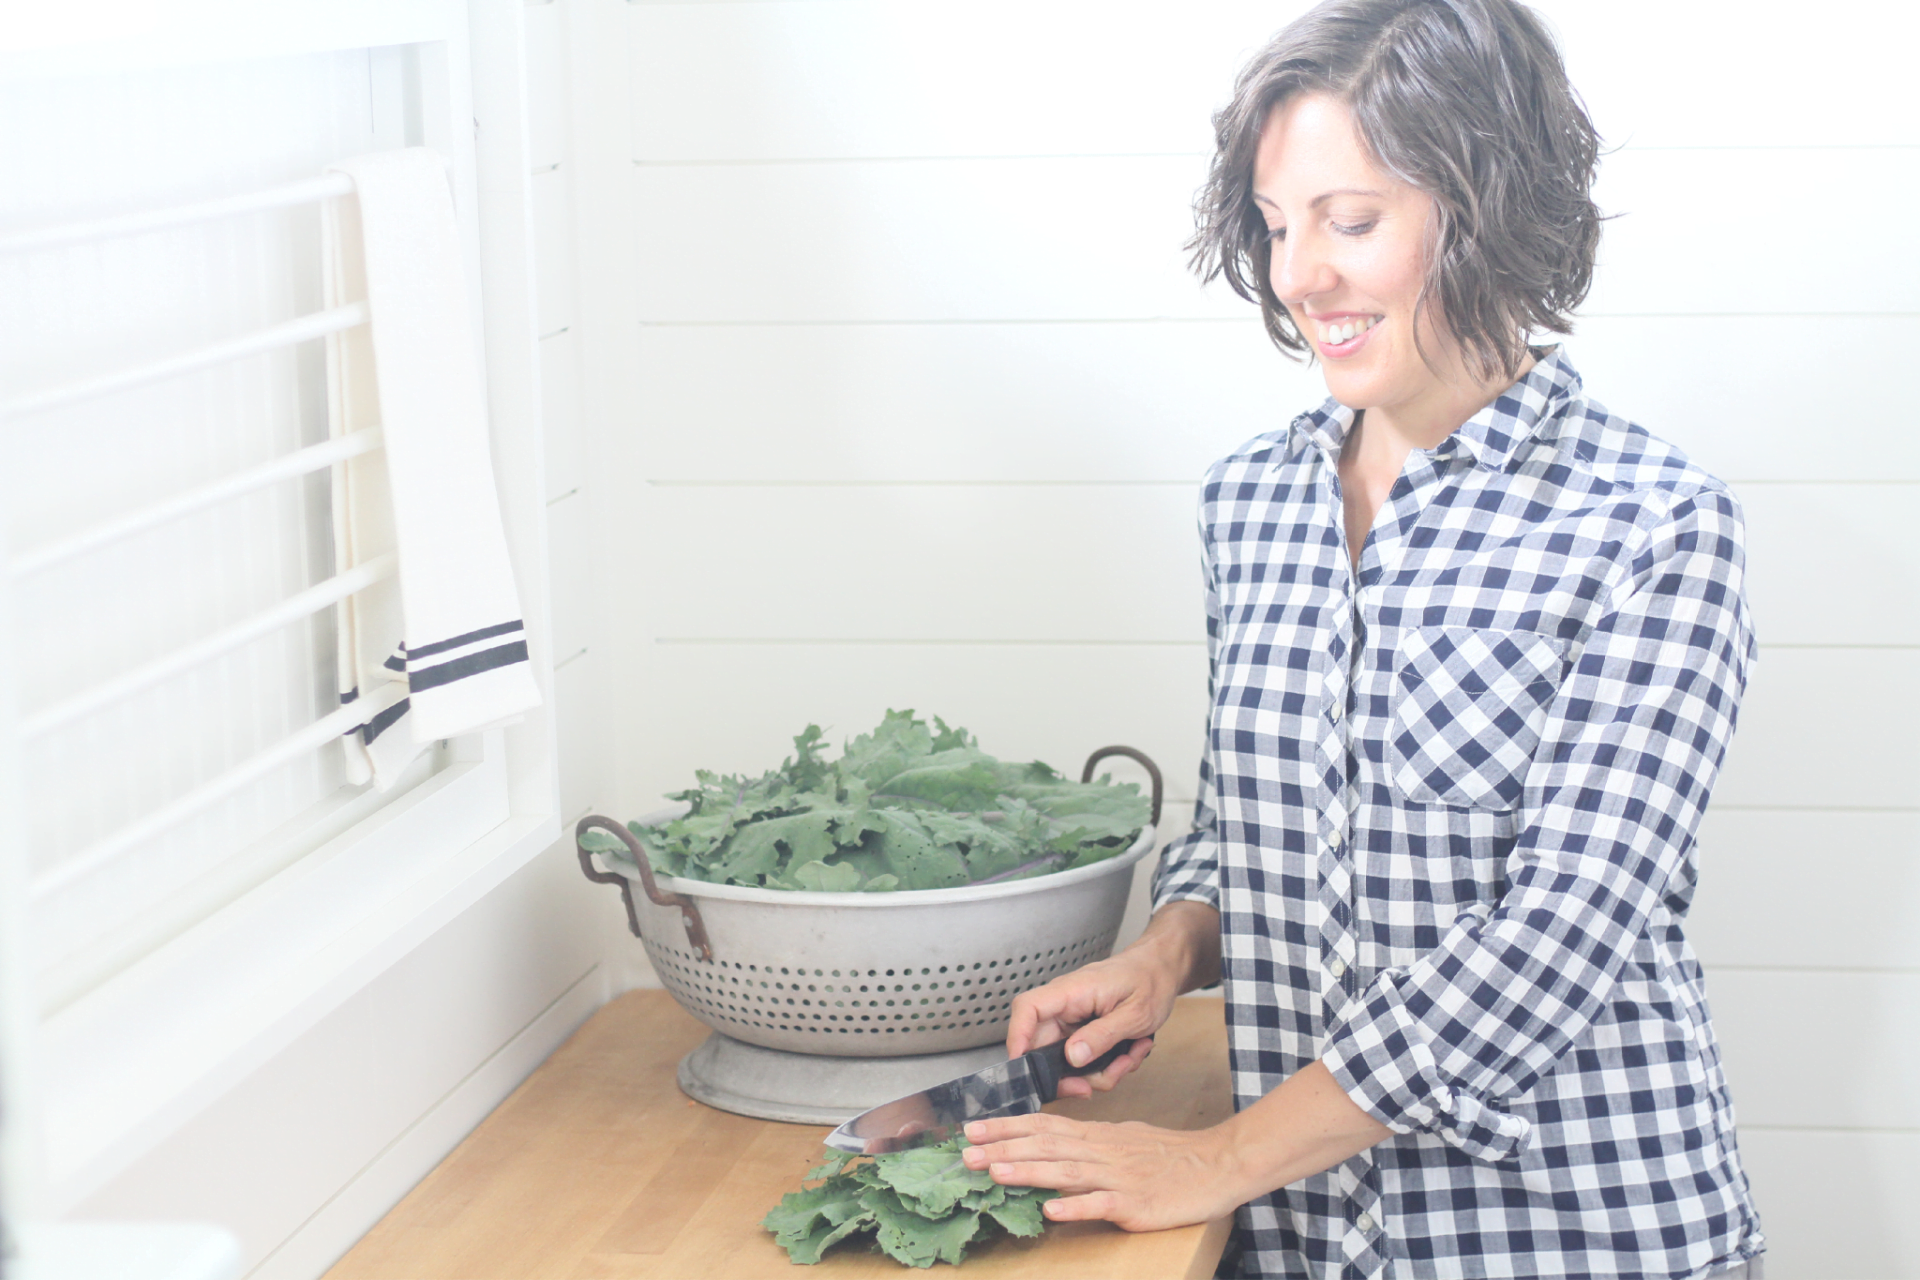 Why I Stopped Eating Raw Kale